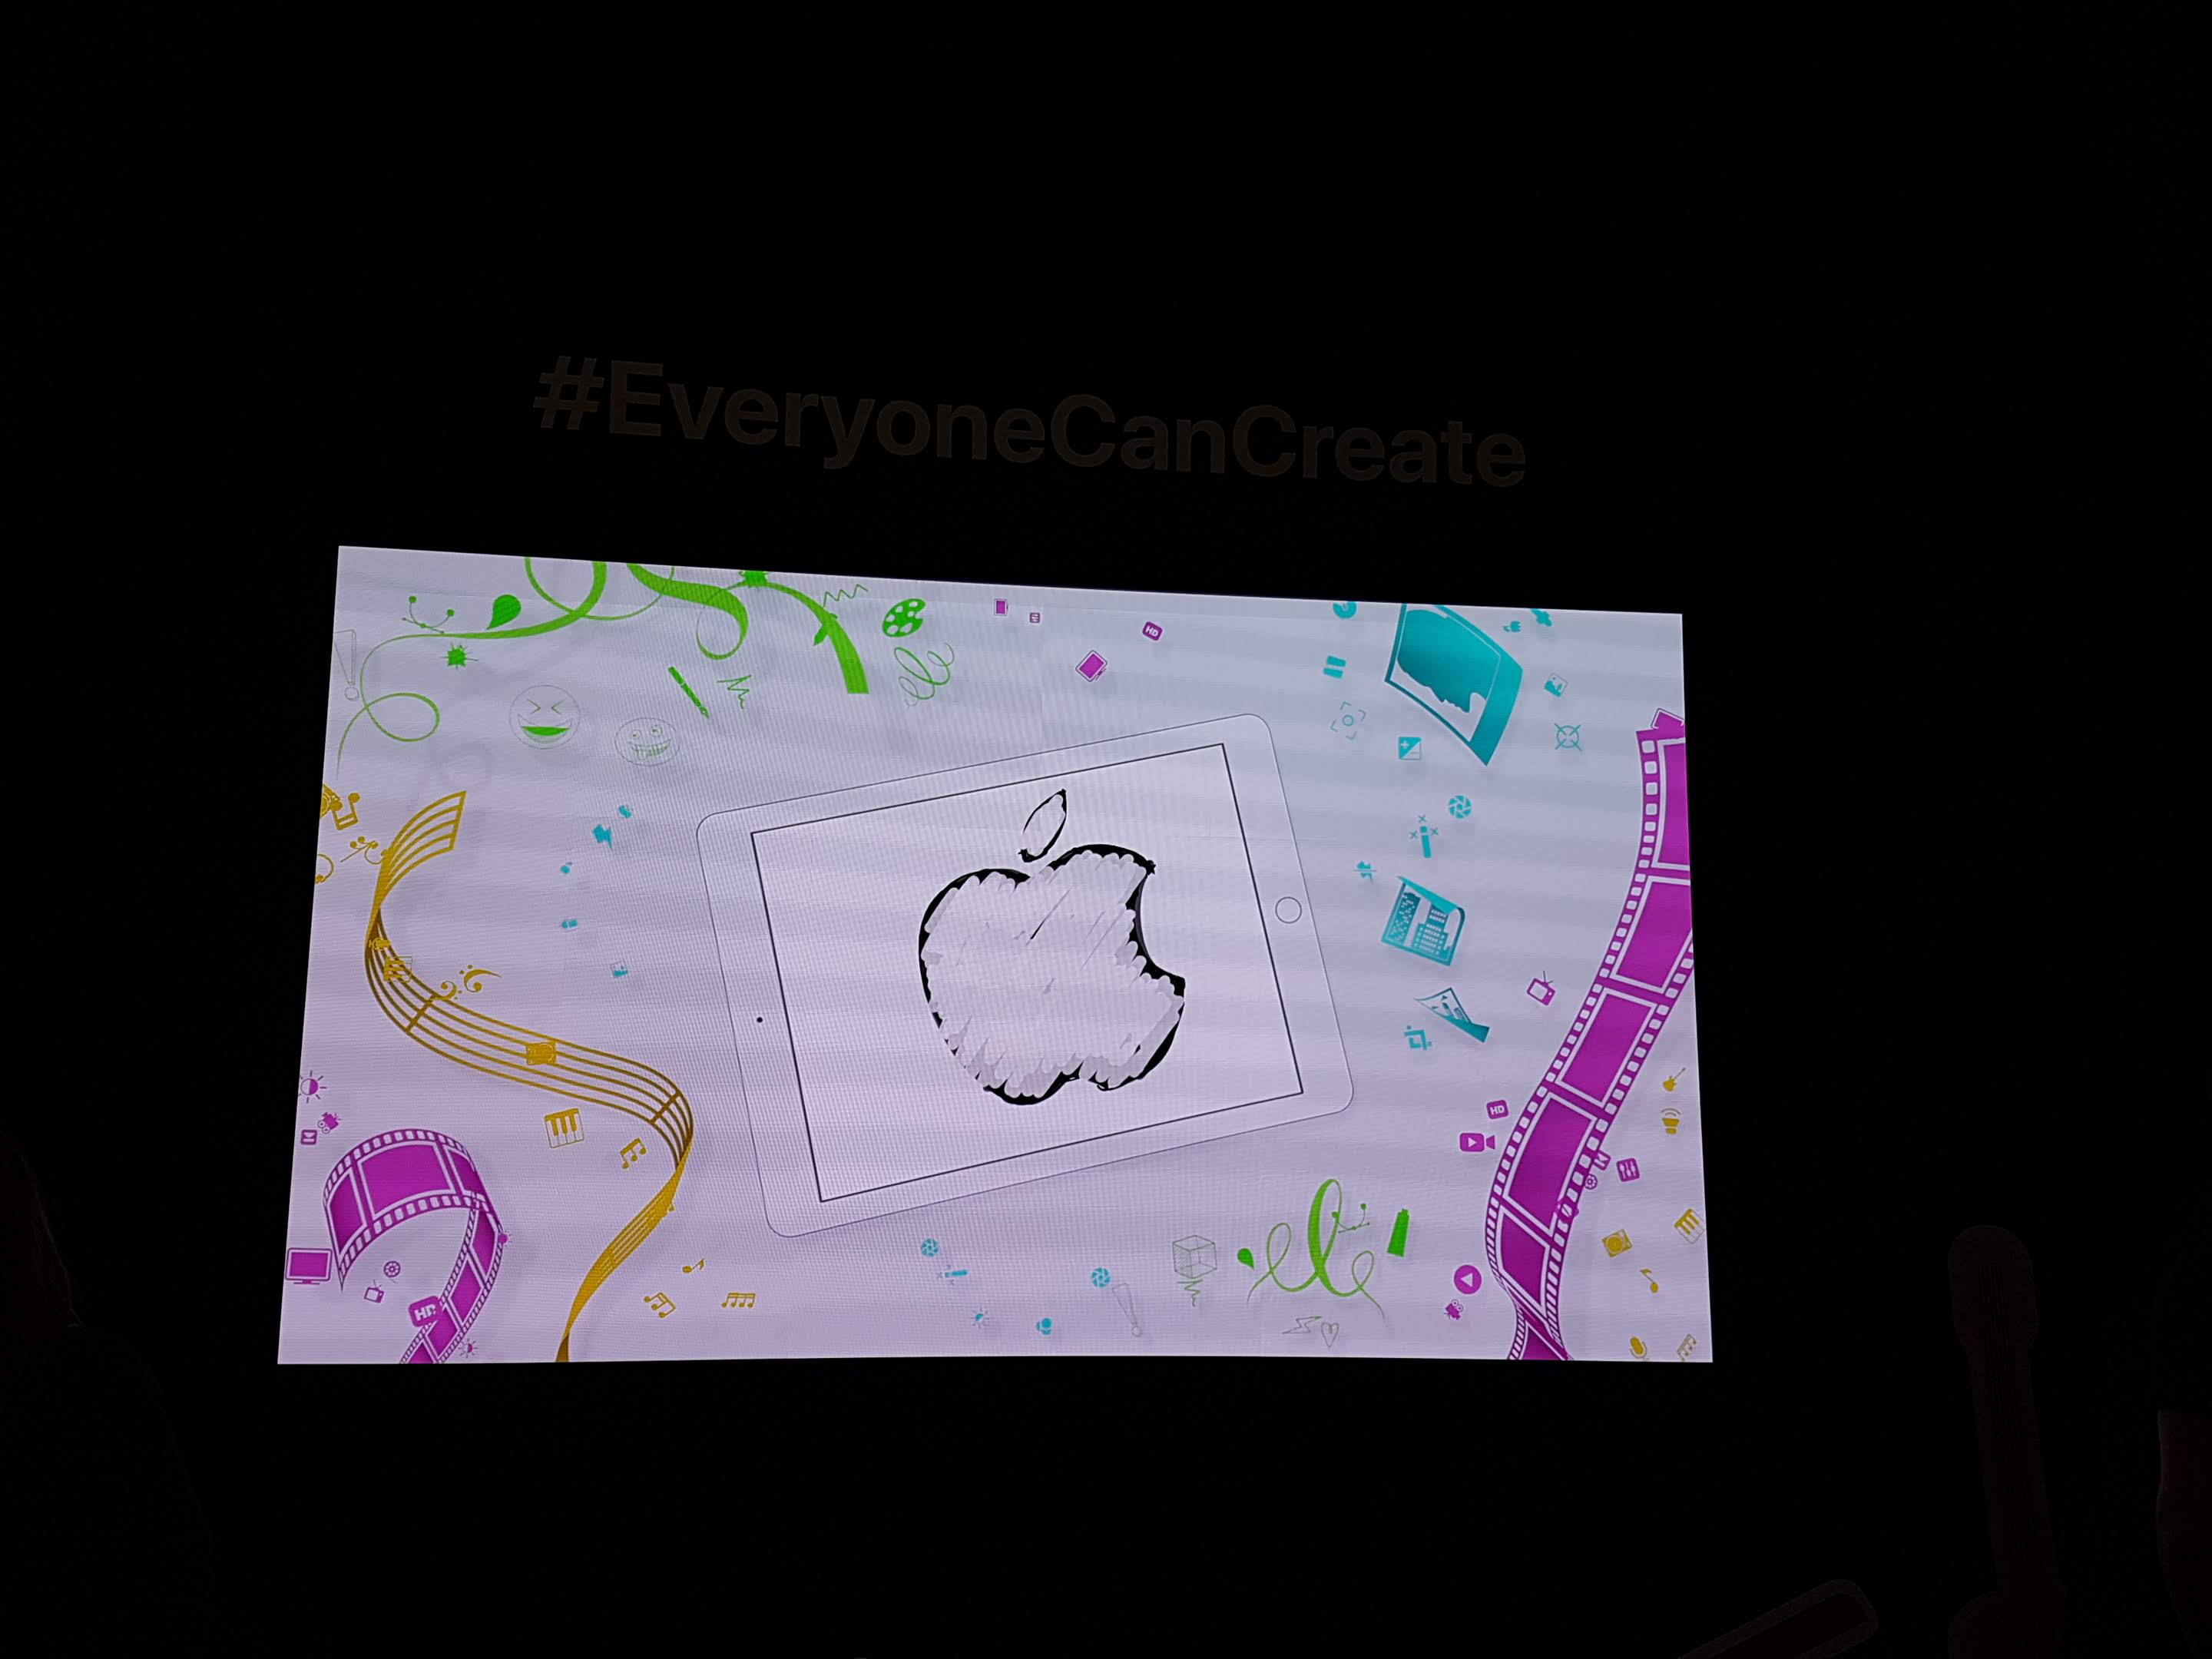 "Have you heard of Apple's creativity packs ""Everyone can Create""?"